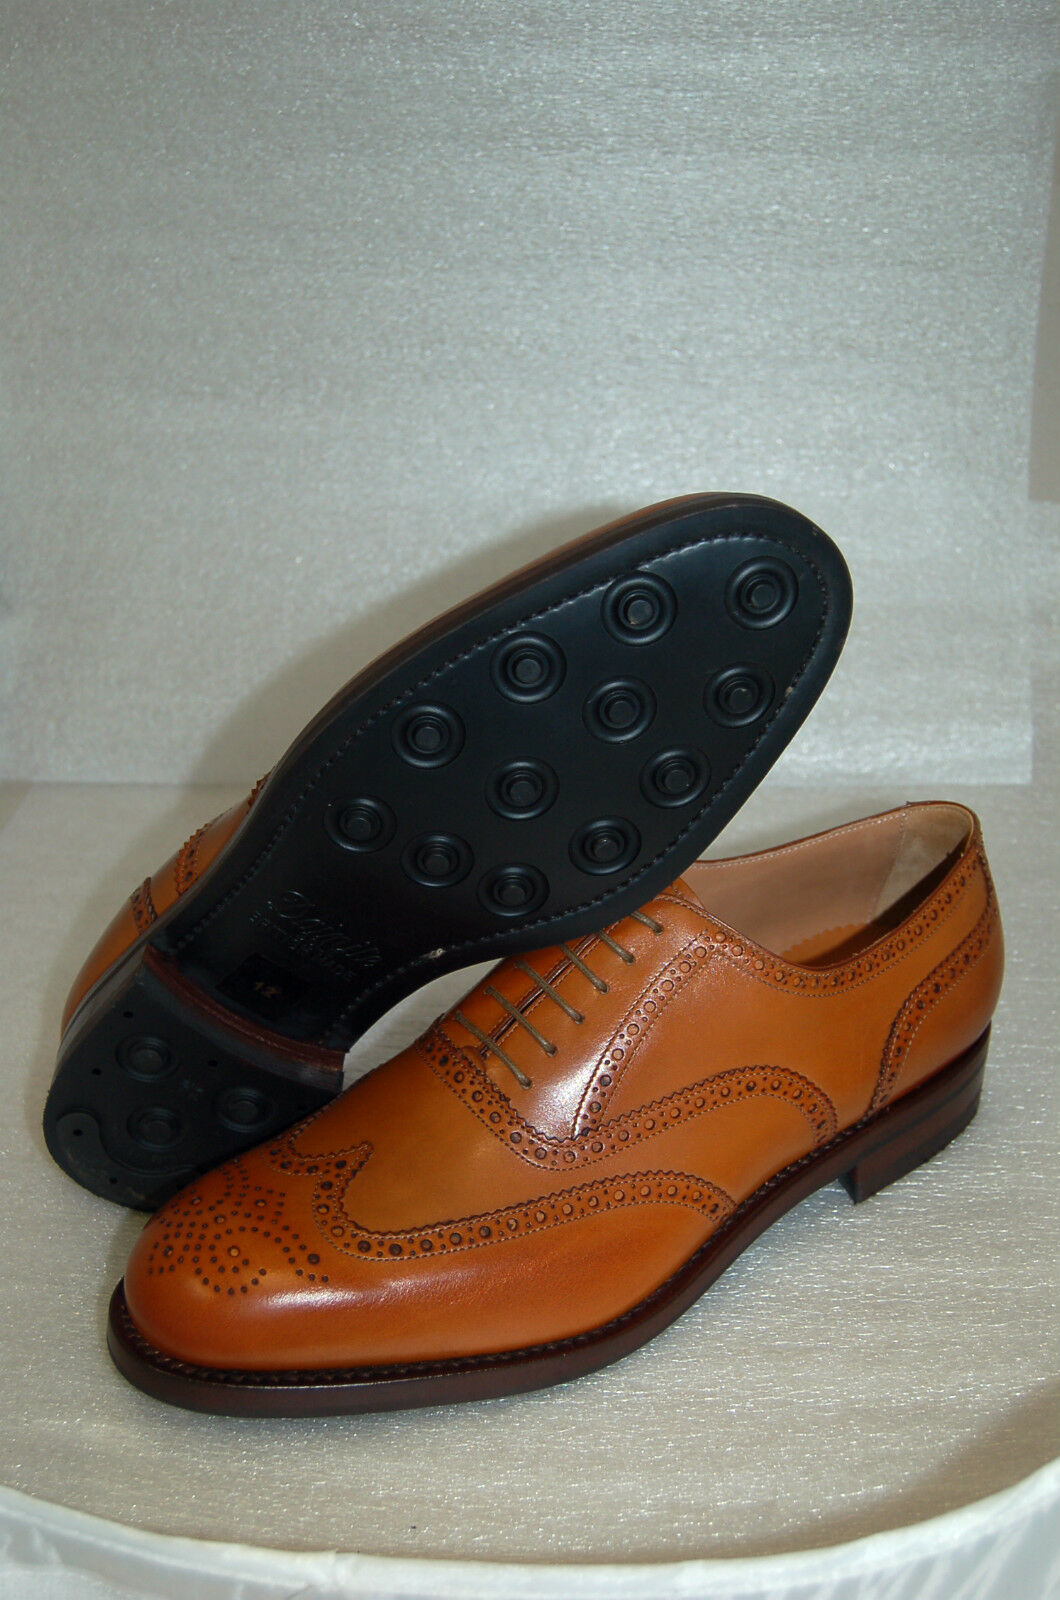 MAN - 46 - 12eu-OXFORD WING WING 12eu-OXFORD CAPTOE-CALF TAN- FRANCESINA CUOIO - LTH SOLE+DAINITE fbd3e3